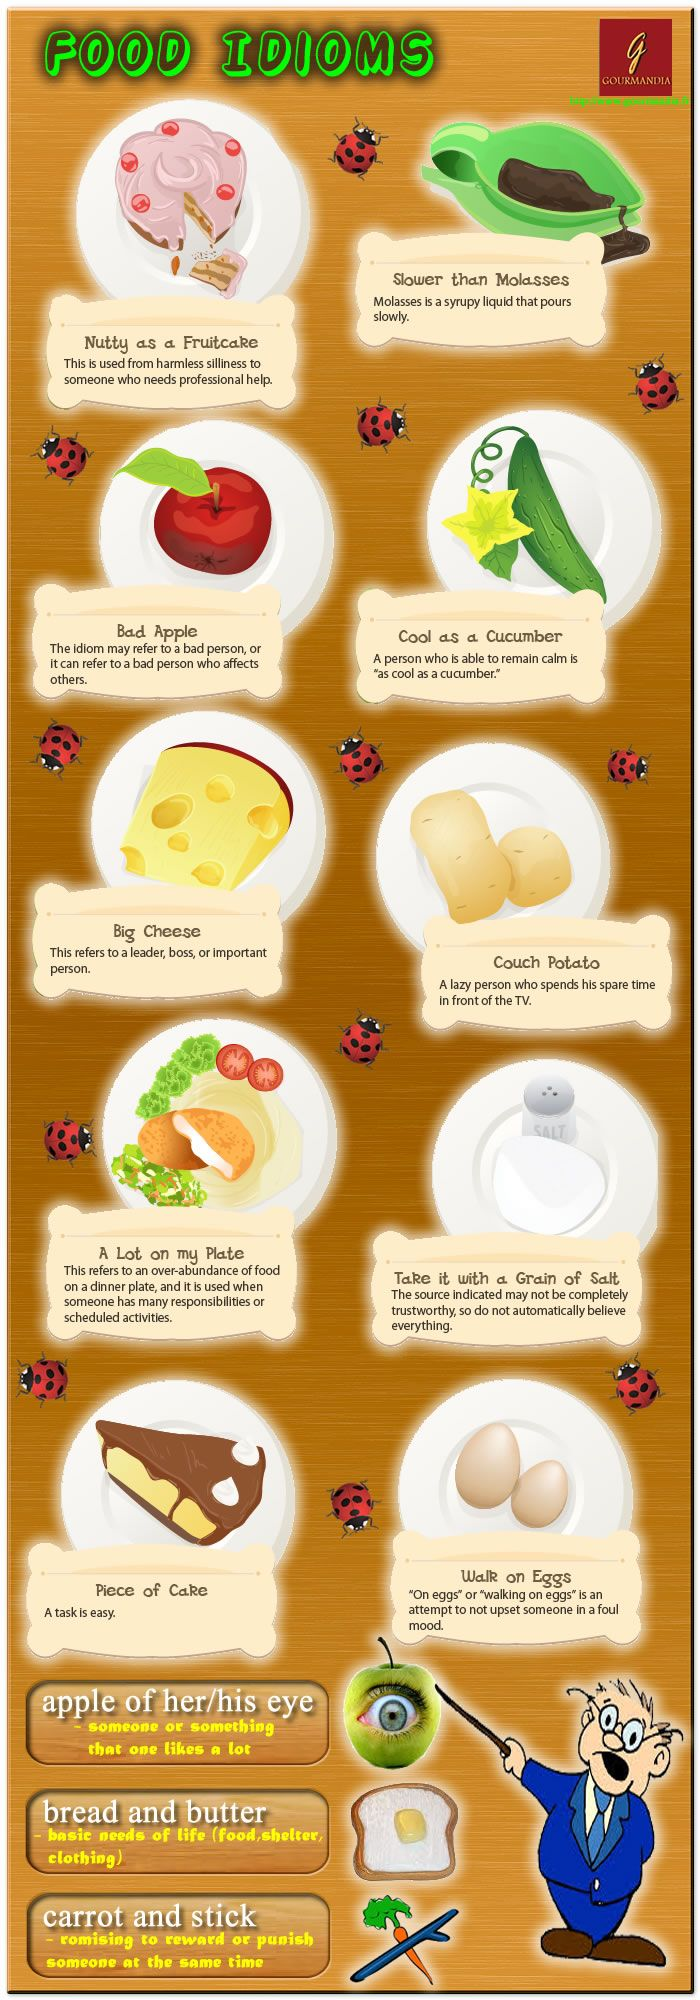 Most languages have idiomatic expressions about food, and English is no exception. Learn English Idioms - idioms and sayings about food.